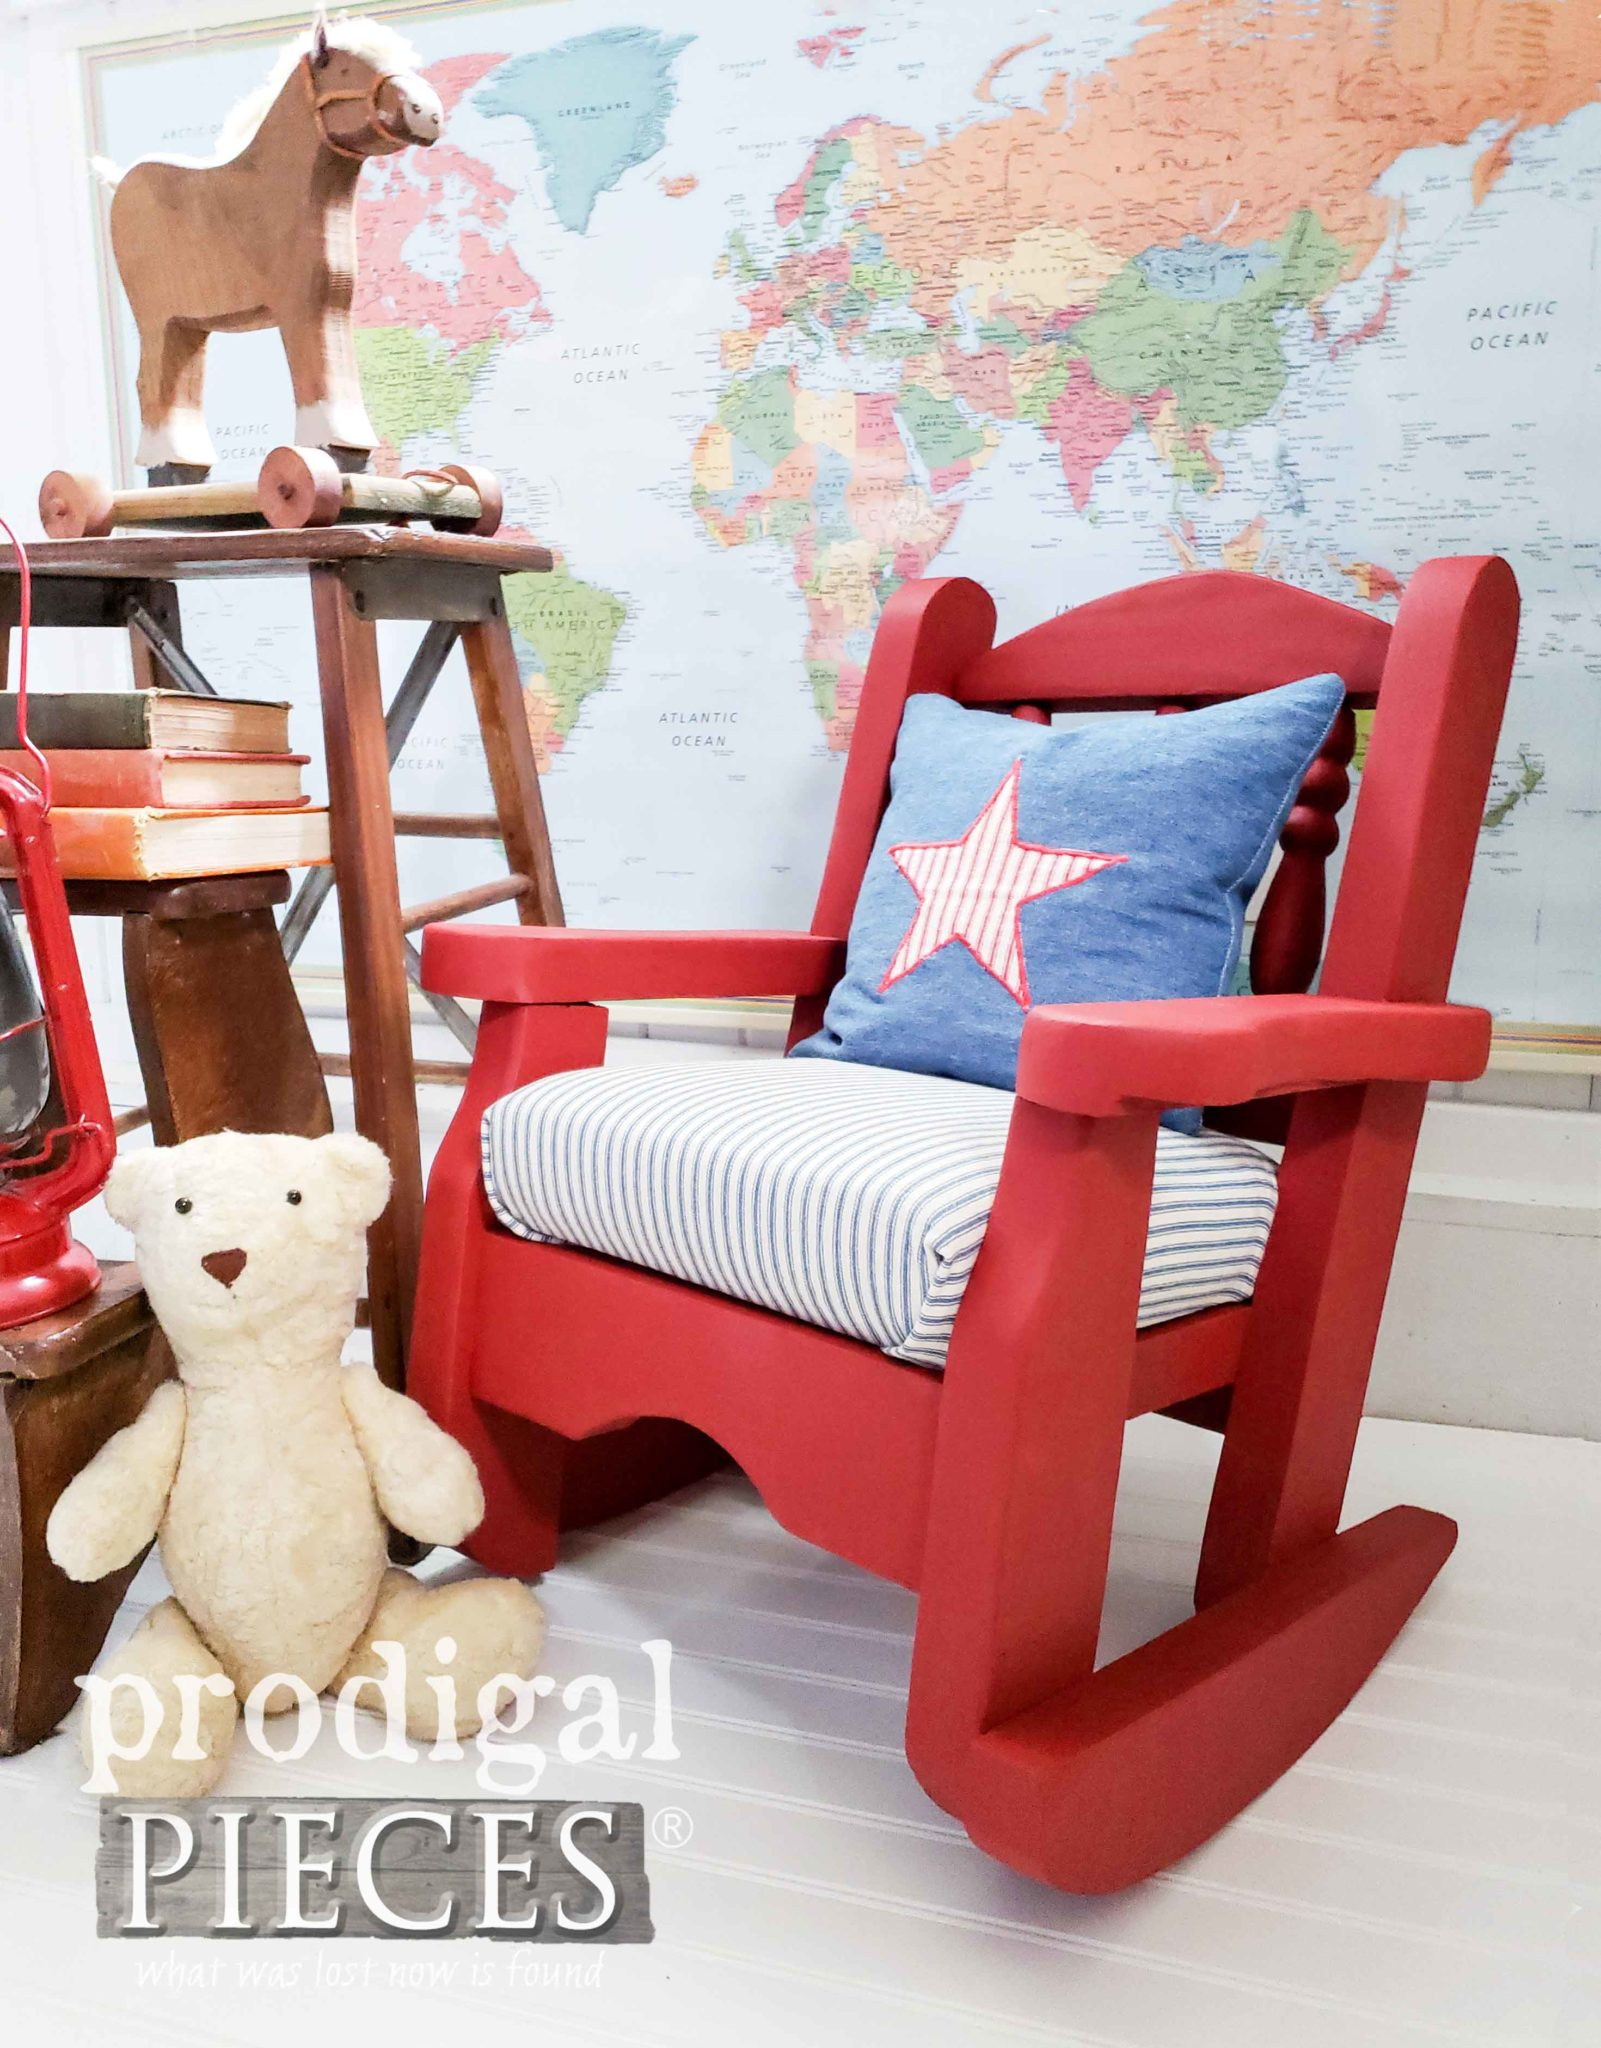 Rustic Red Farmhouse Style Child's Rocking Chair Redo by Larissa of Prodigal Pieces | prodigalpieces.com